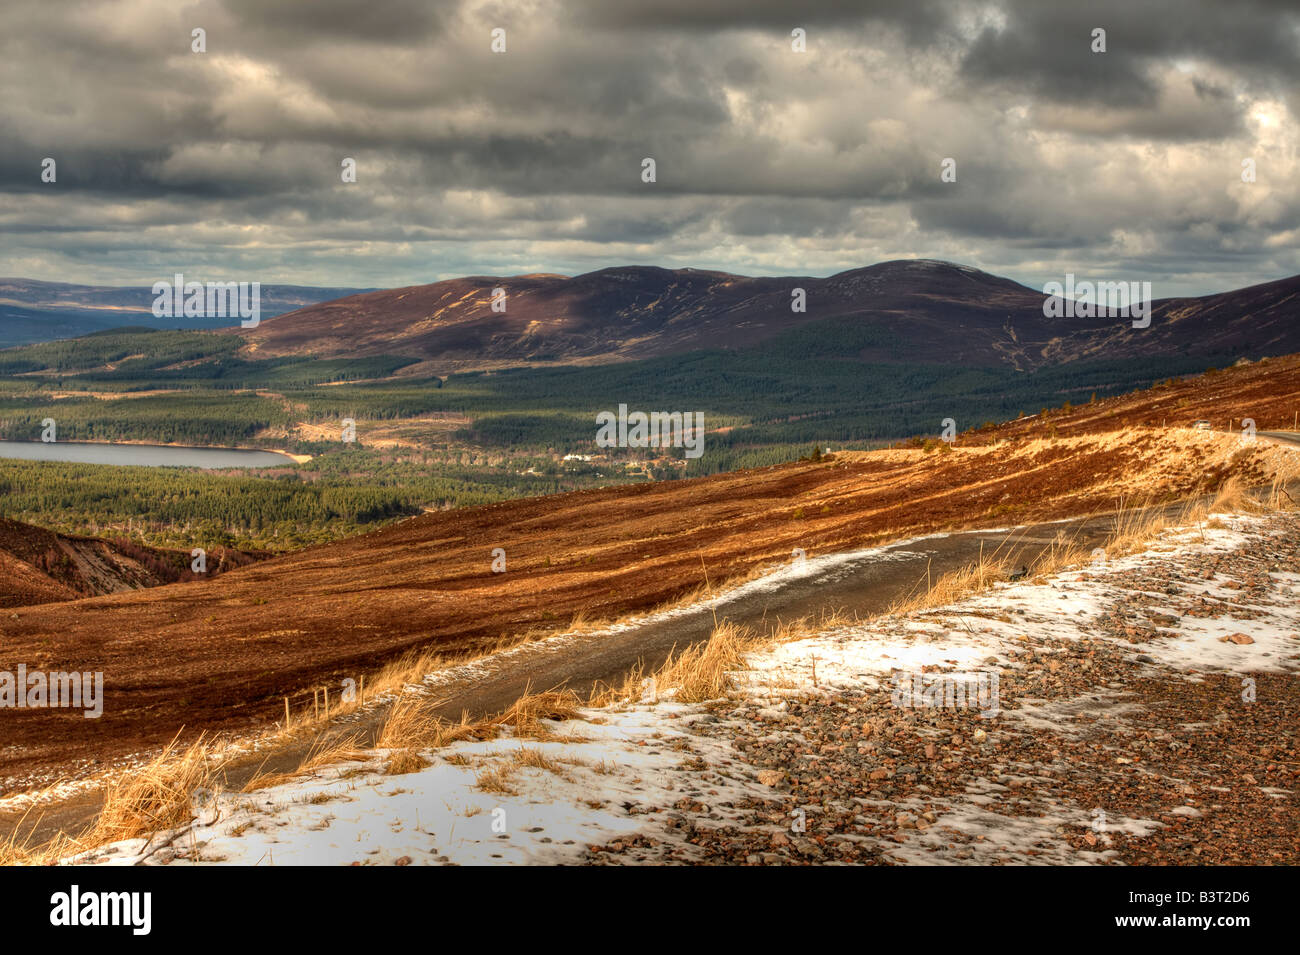 View of the Cairngorm mountains in Scotland. - Stock Image